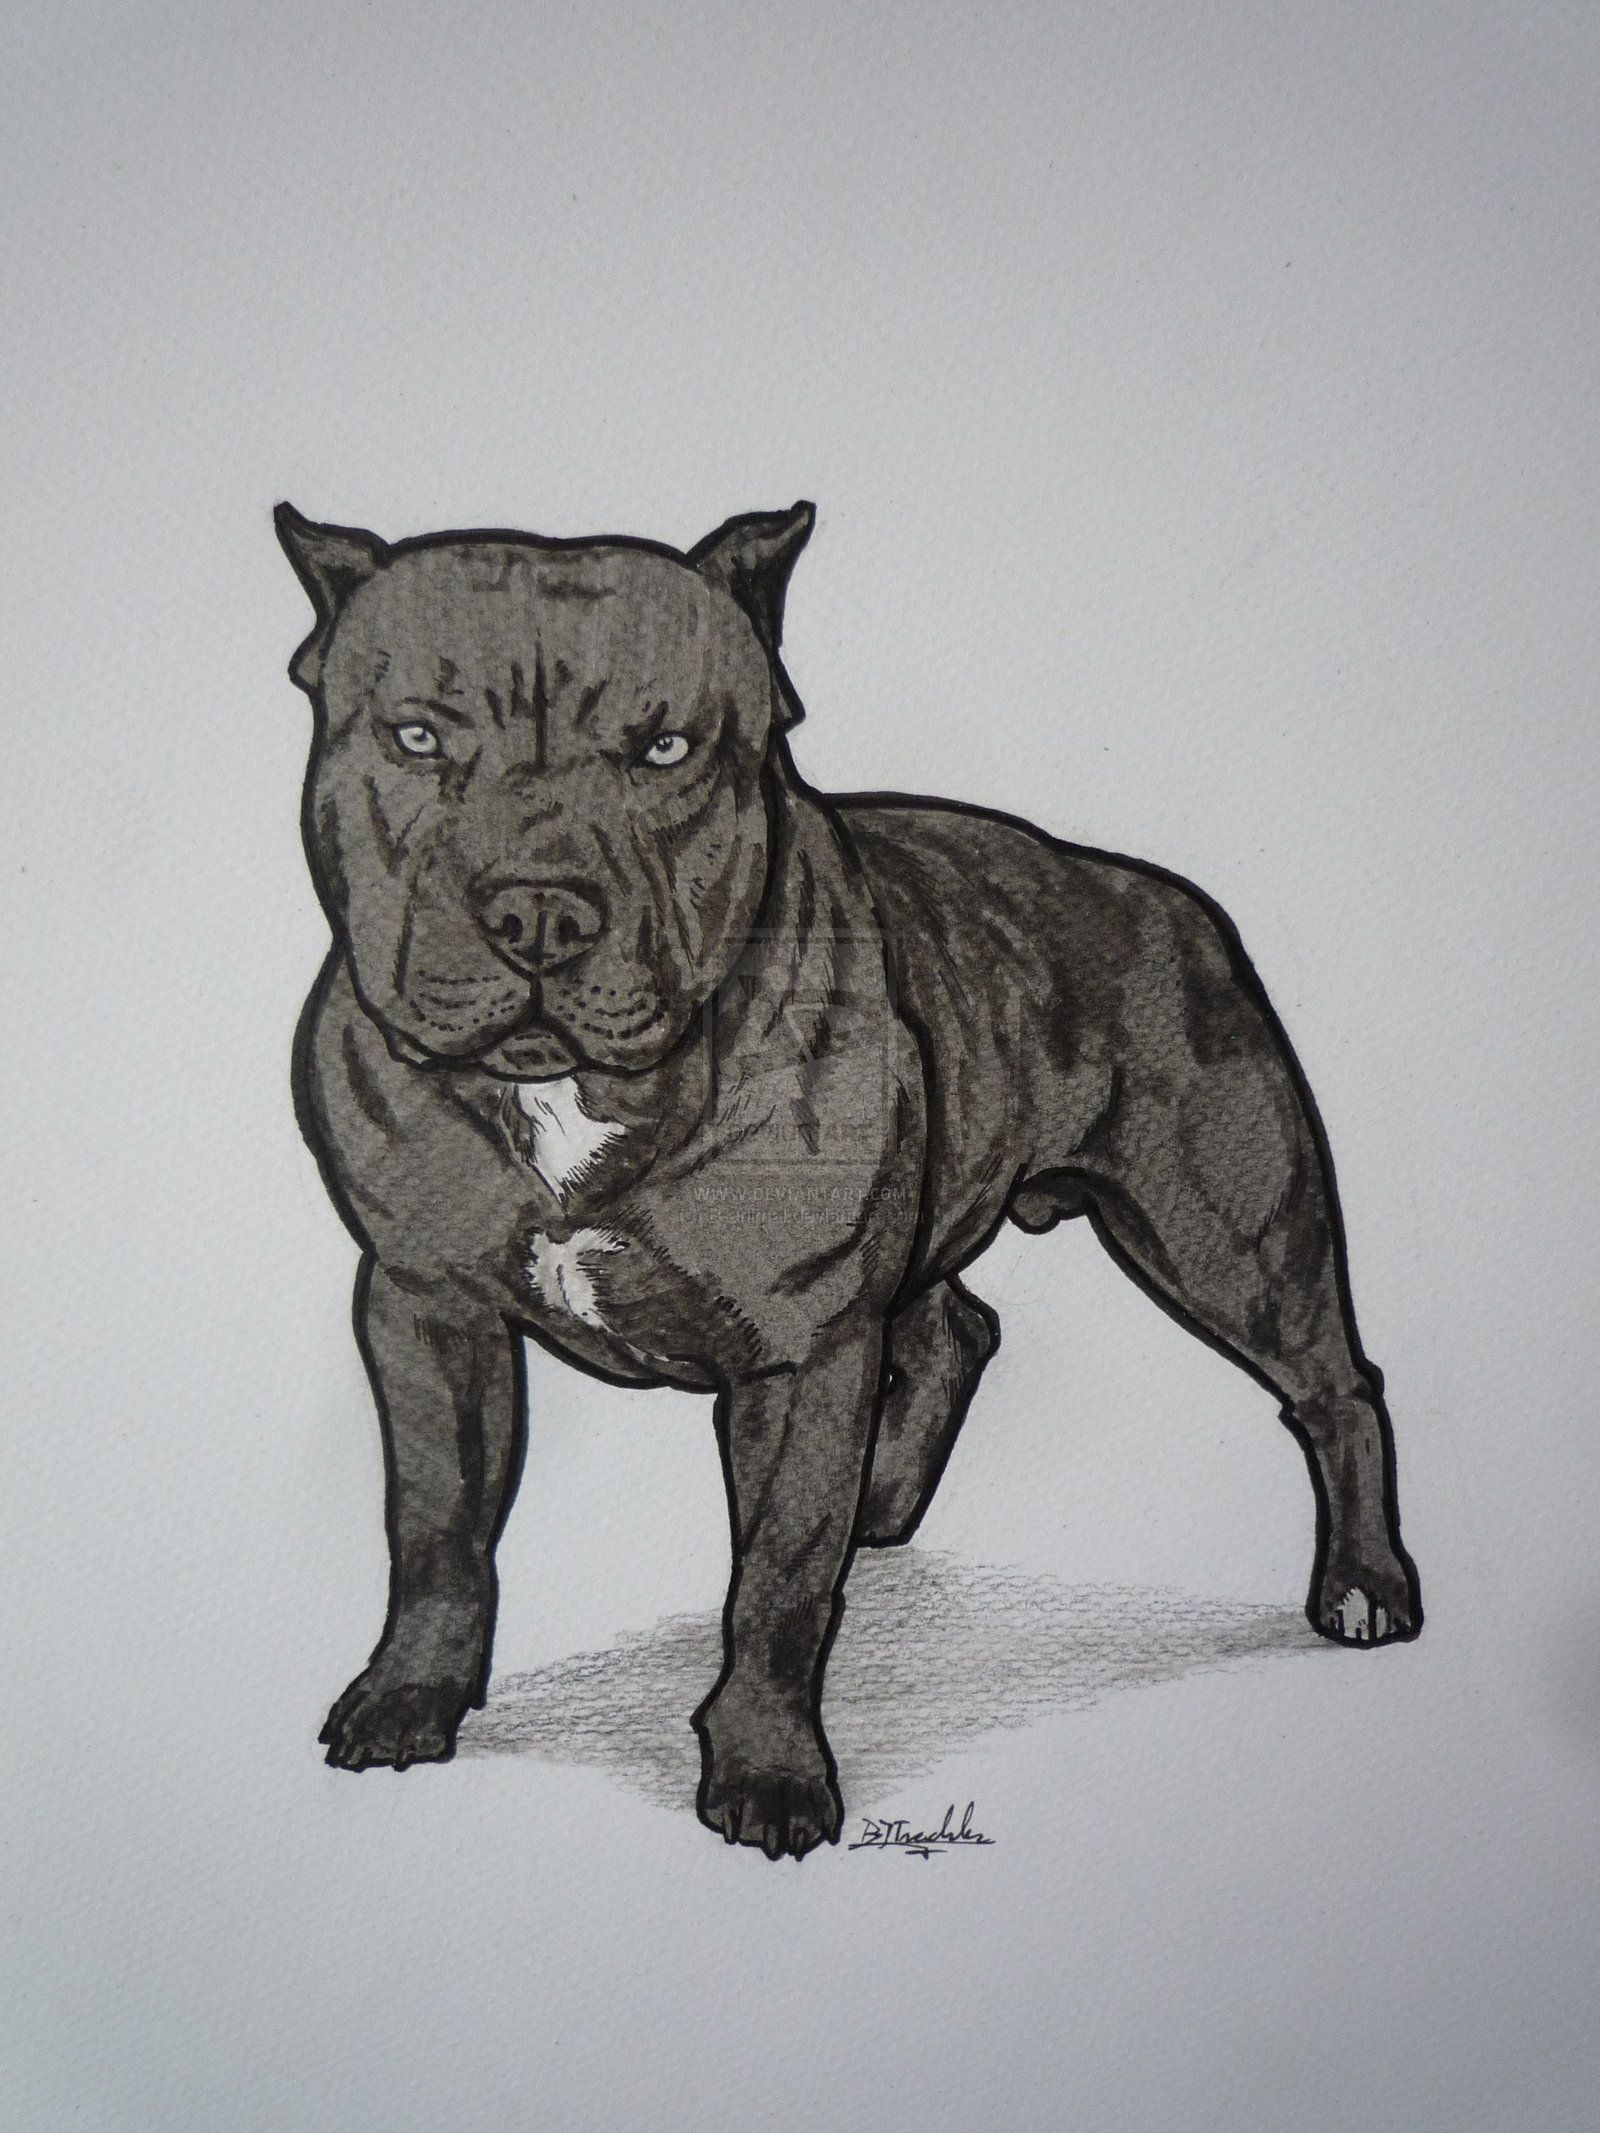 Drawn Pitbull Red Nose Pencil And In Color Drawn Pitbull Red